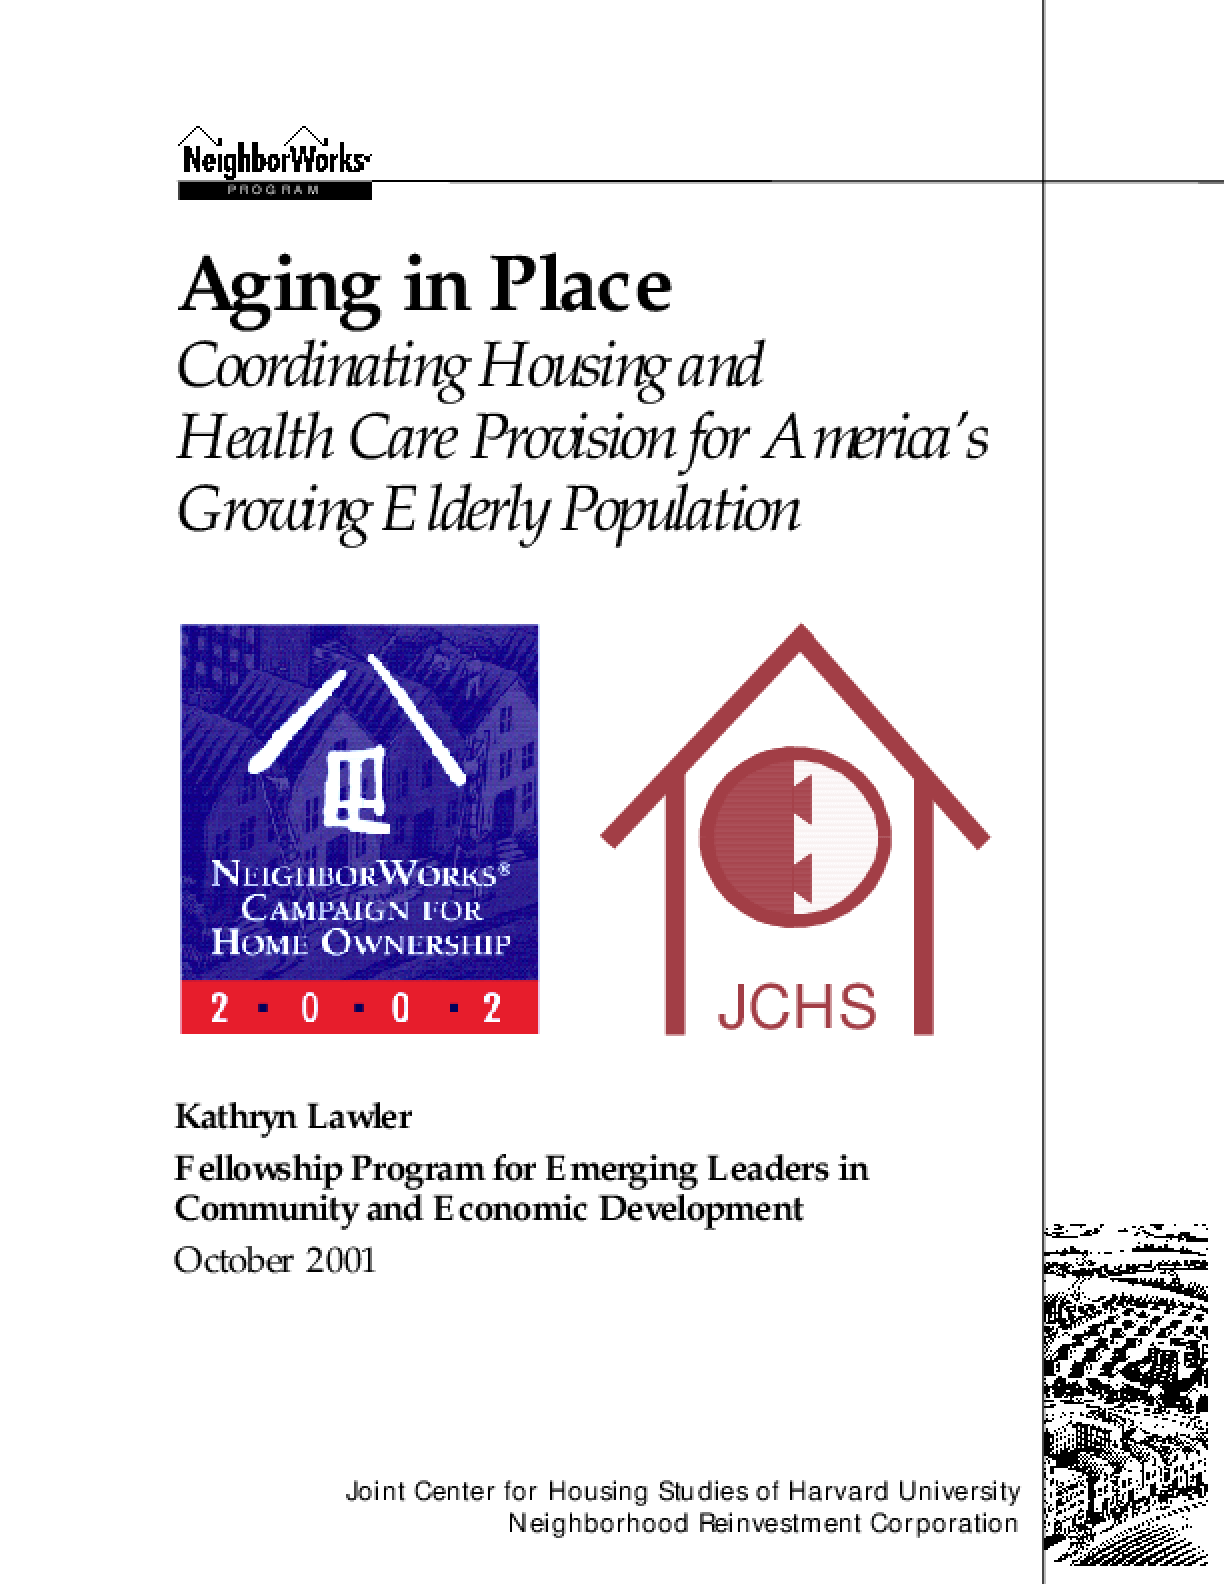 Aging in Place - Coordinating Housing and Health Care Provision for America